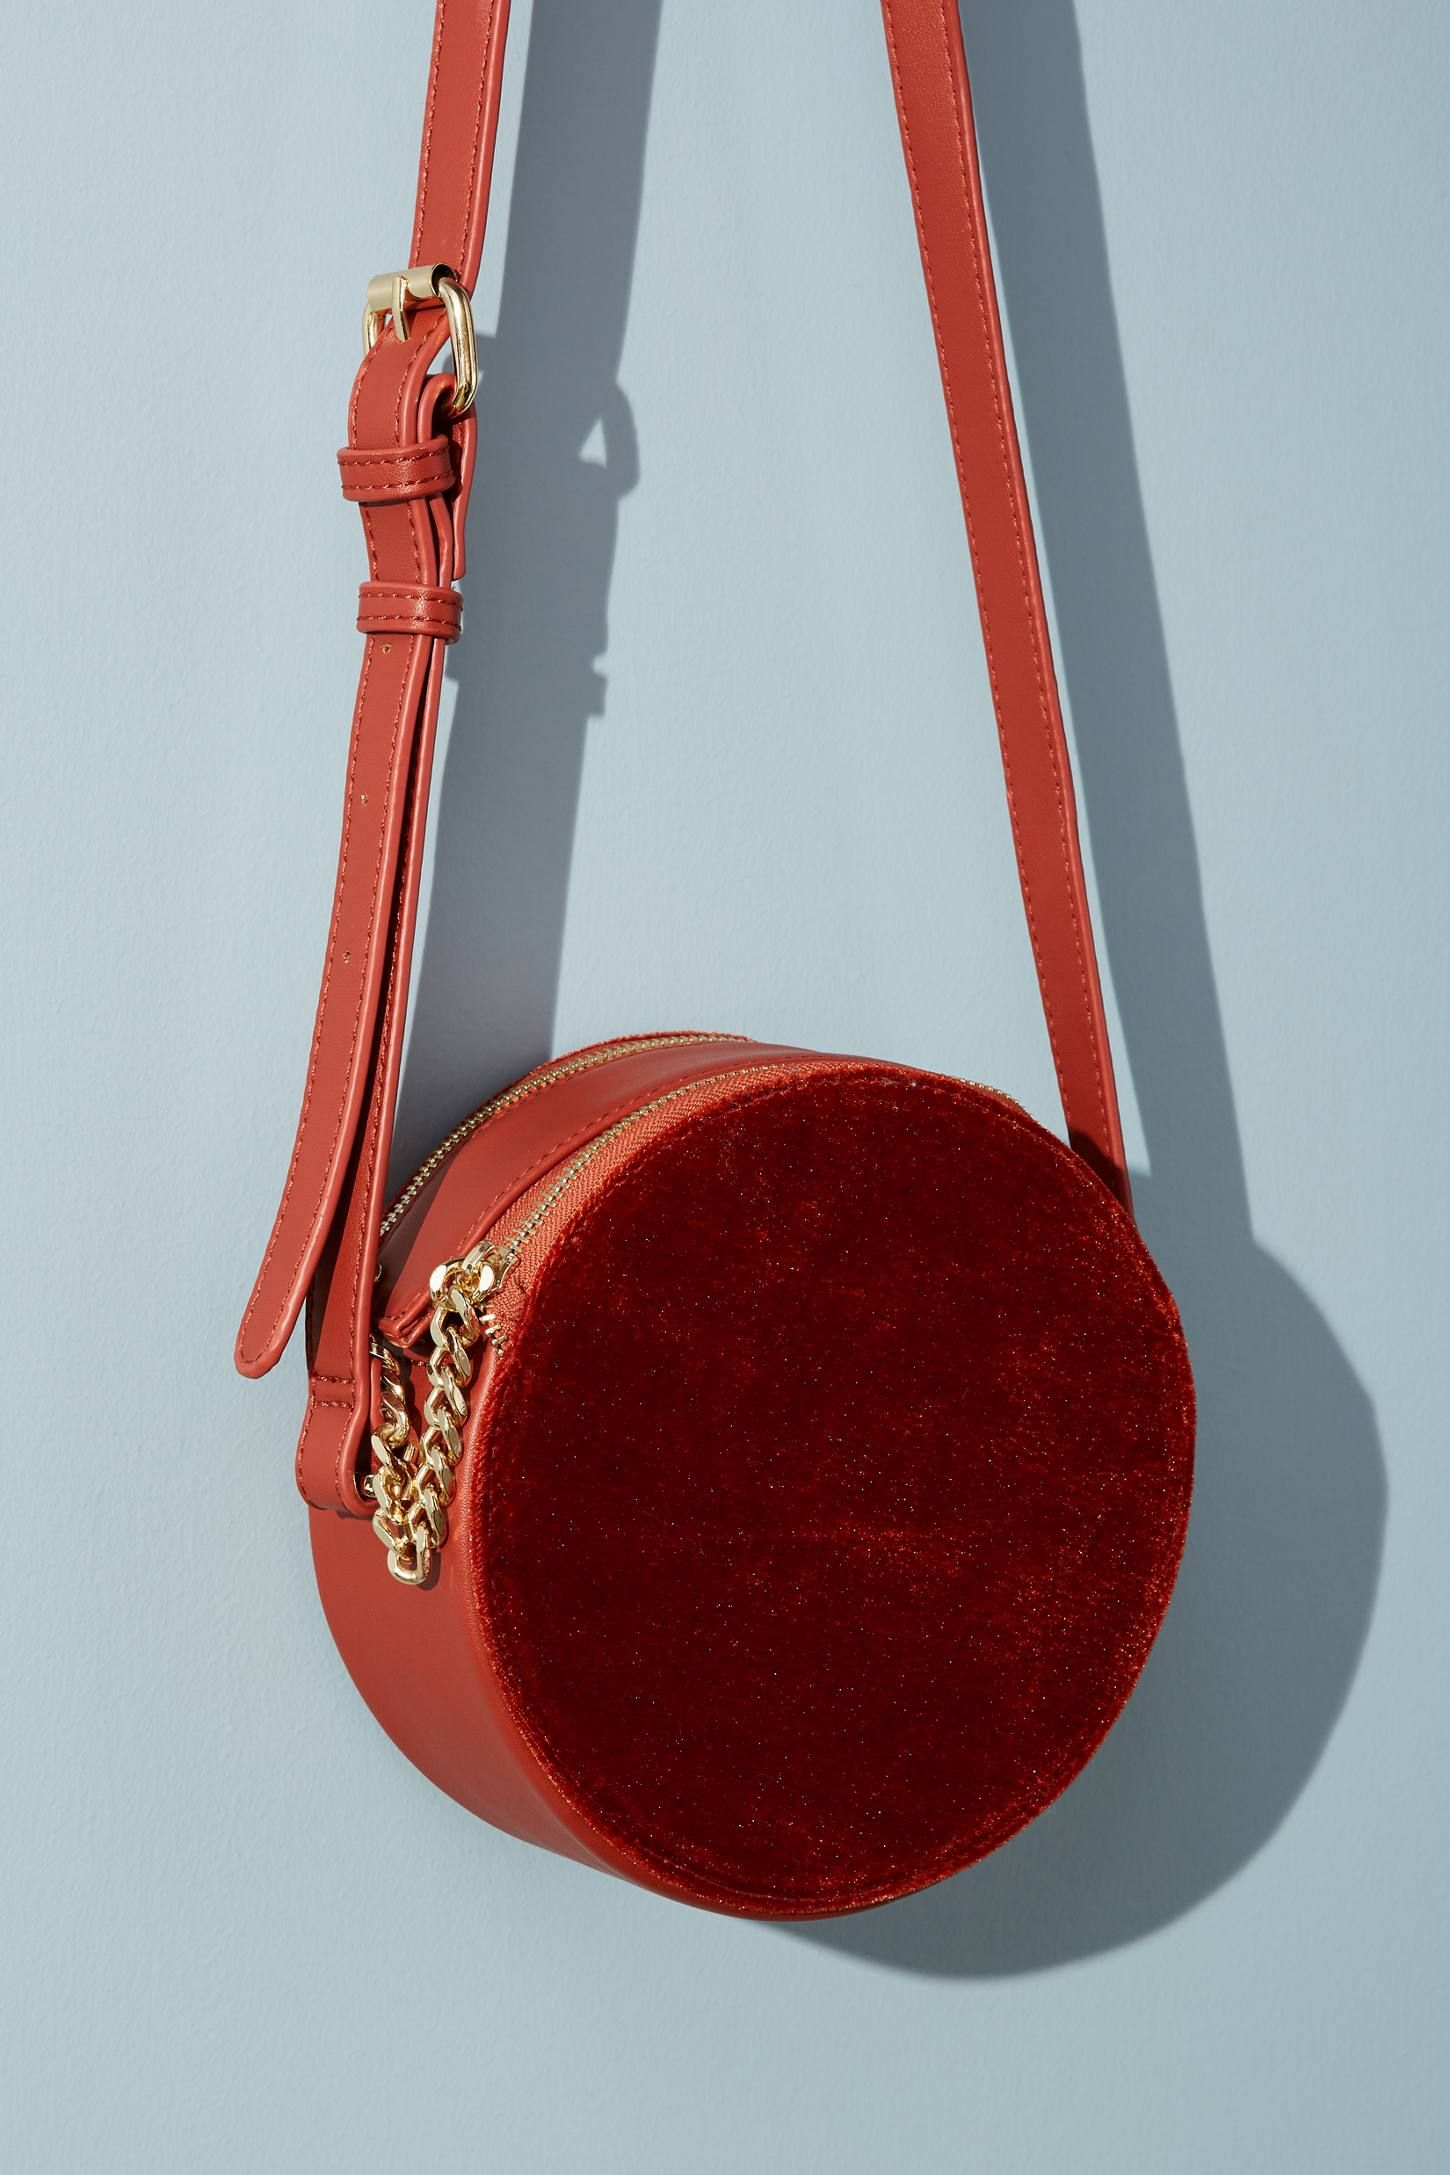 f8d932774b78 Shop the Carolena Circular Crossbody Bag and more Anthropologie at  Anthropologie today. Read customer reviews